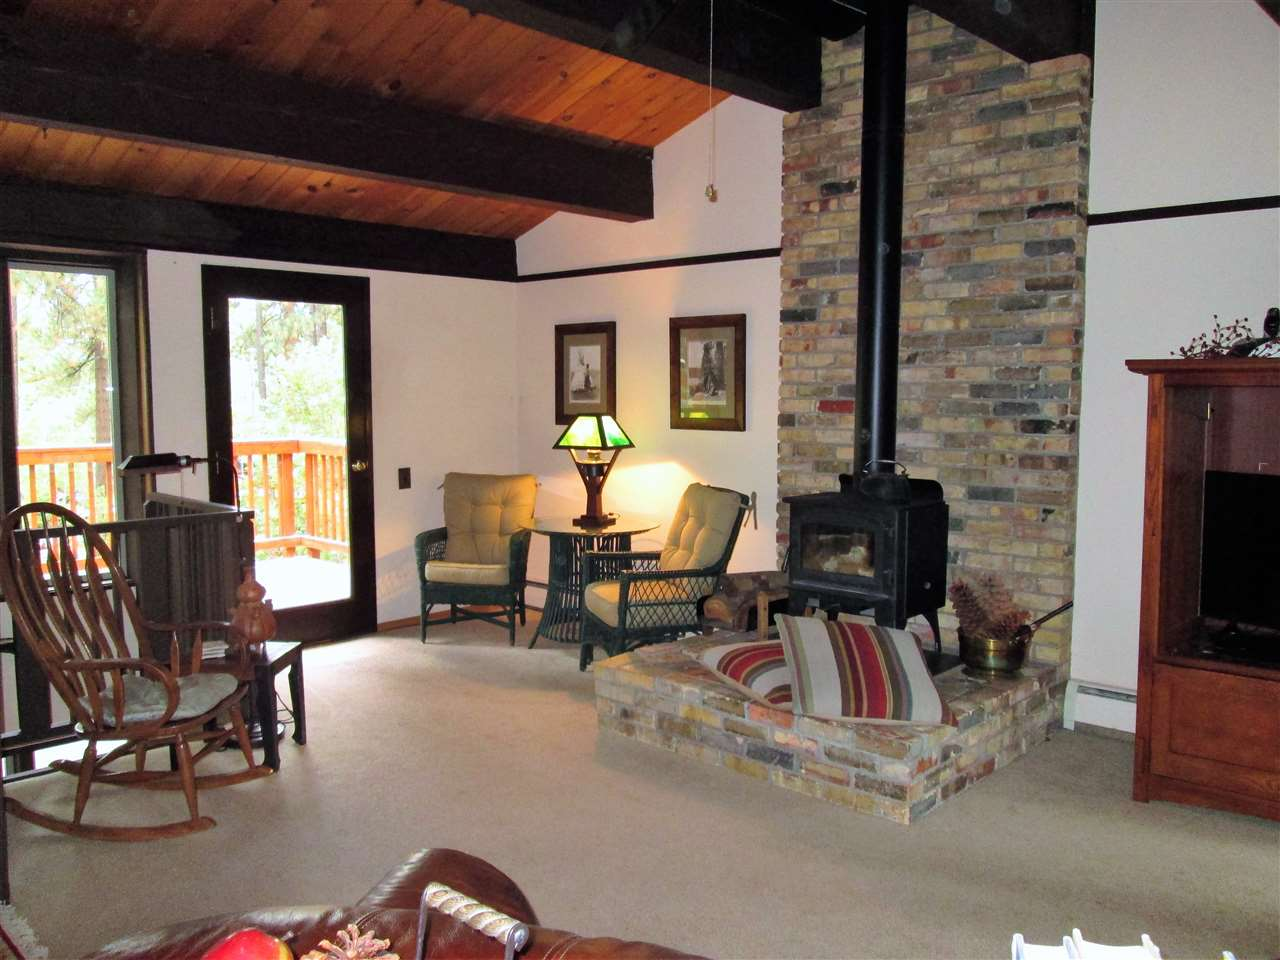 Additional photo for property listing at 702 College Drive 702 College Drive Incline Village, Nevada 89451 United States